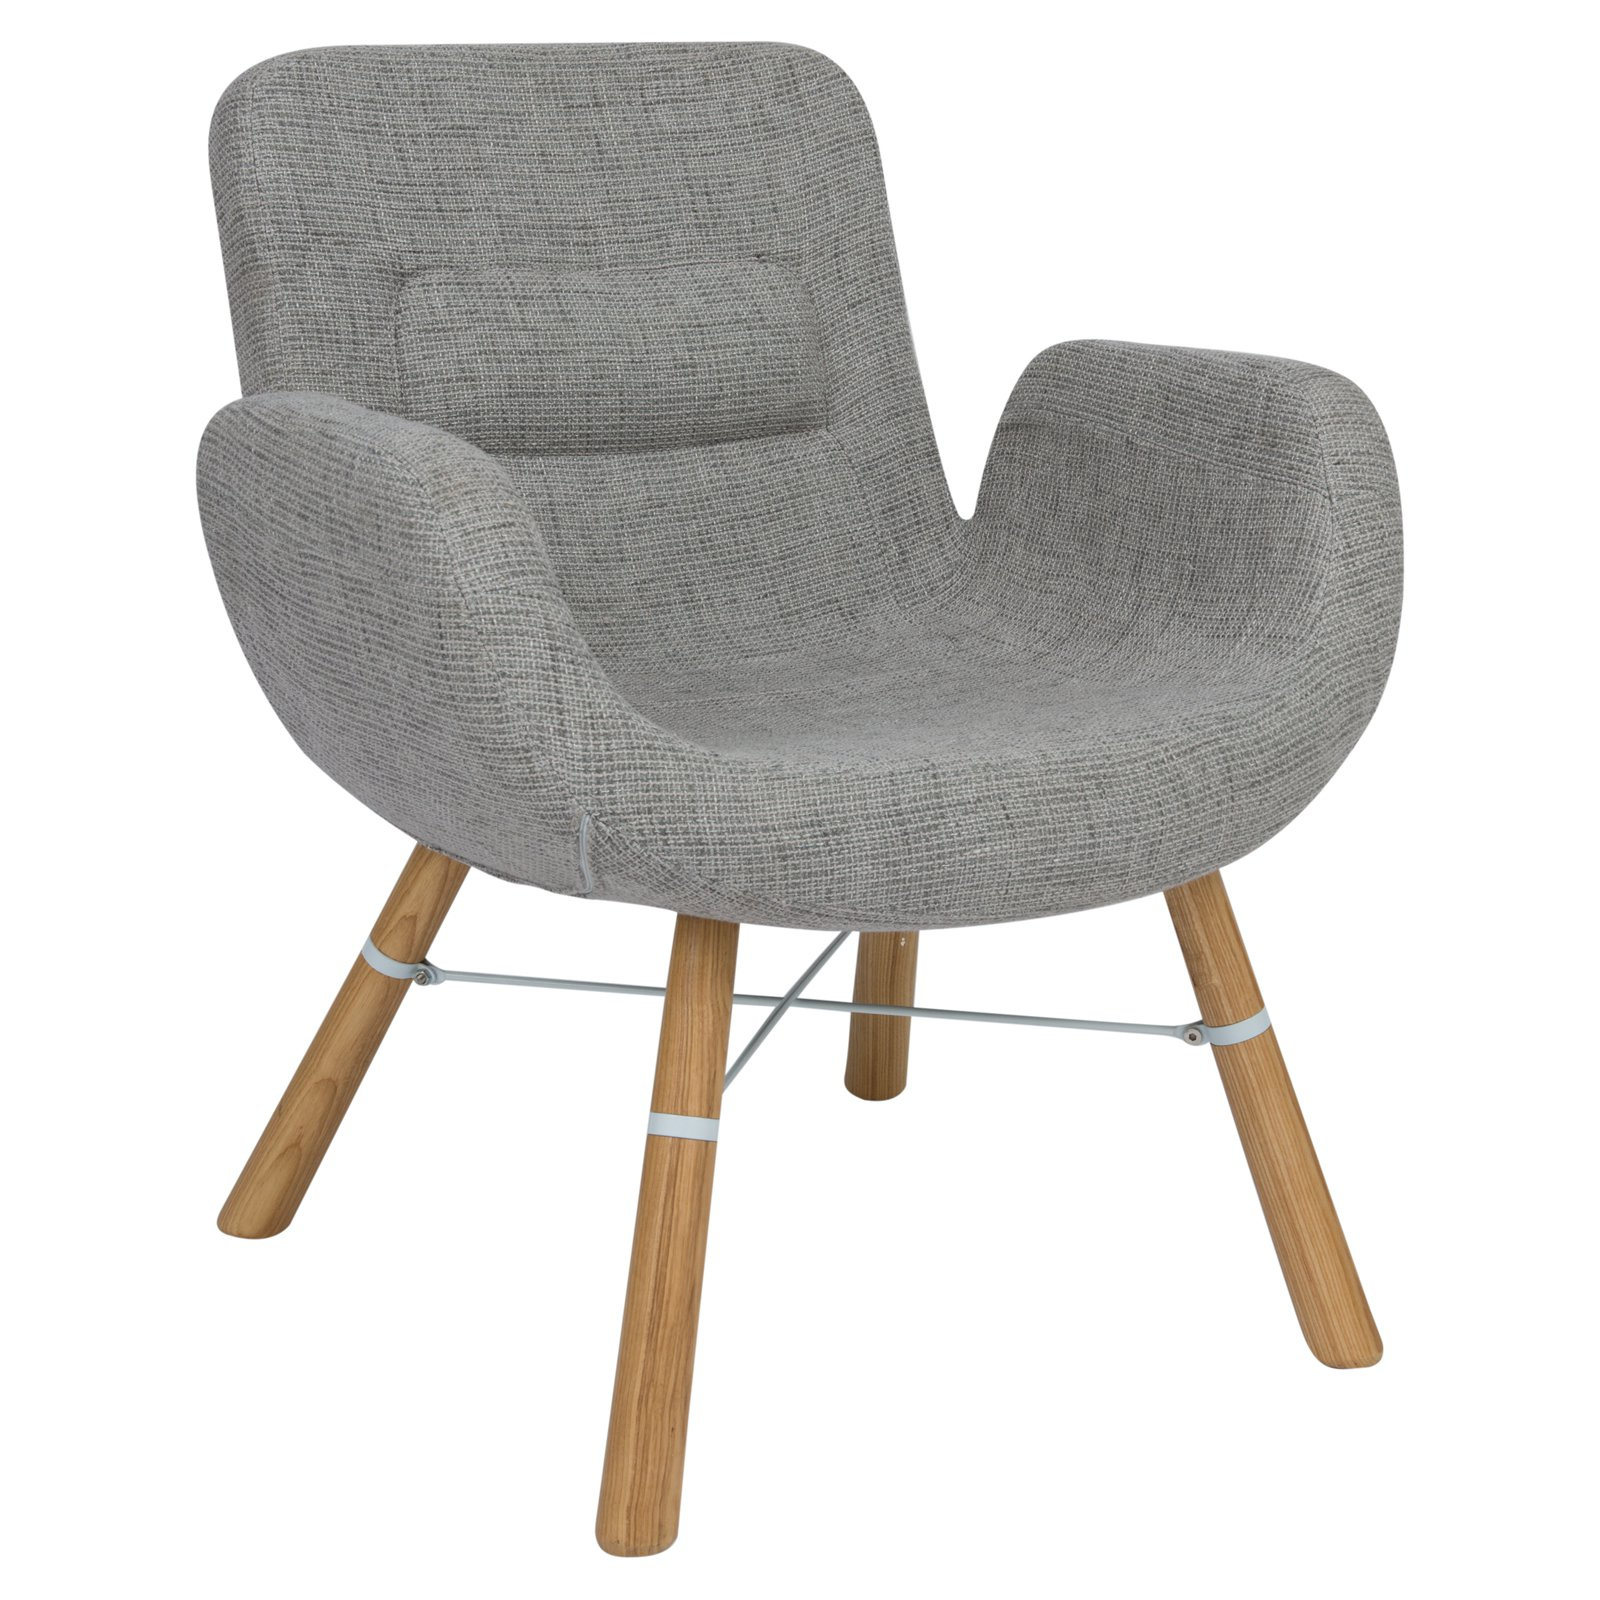 LeisureMod Milwood Ergonomic Accent Lounge Chair